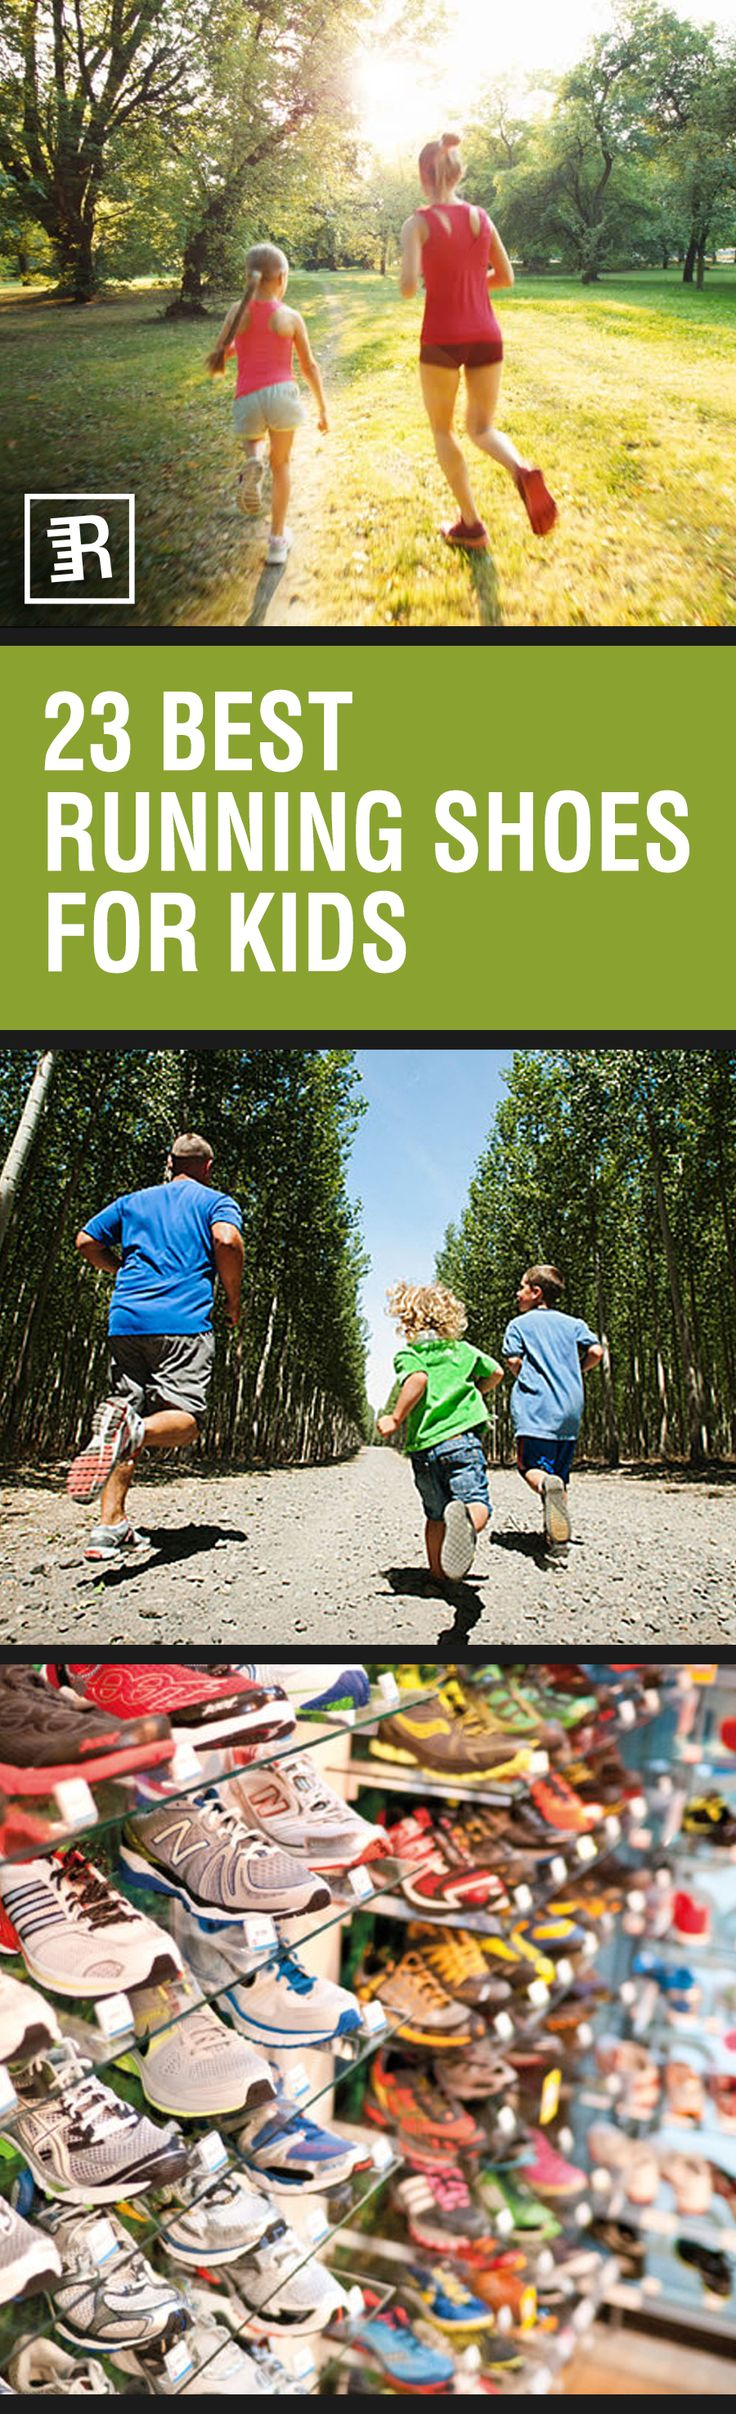 Finding kids running shoes built to last and fit for purpose can be a tricky thing. The more miles they put in the more they will need something robust that remains strong over time. Whether they are in primary school, Junior high or high school, kids need to find versatile shoes that have the ability to crossover. Providing adaptable features for multiple surfaces may be desirable unless the individual is a regular runner.